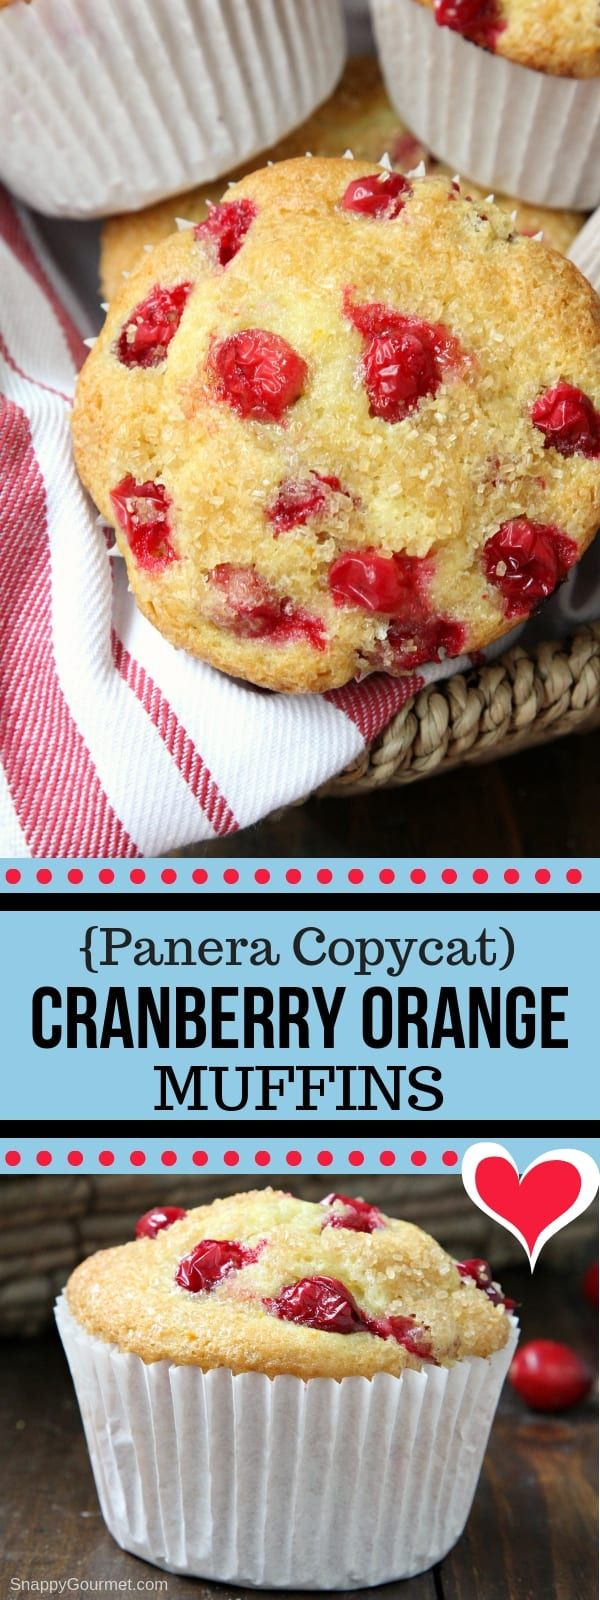 Pin On Snappy Gourmet Recipes Posts